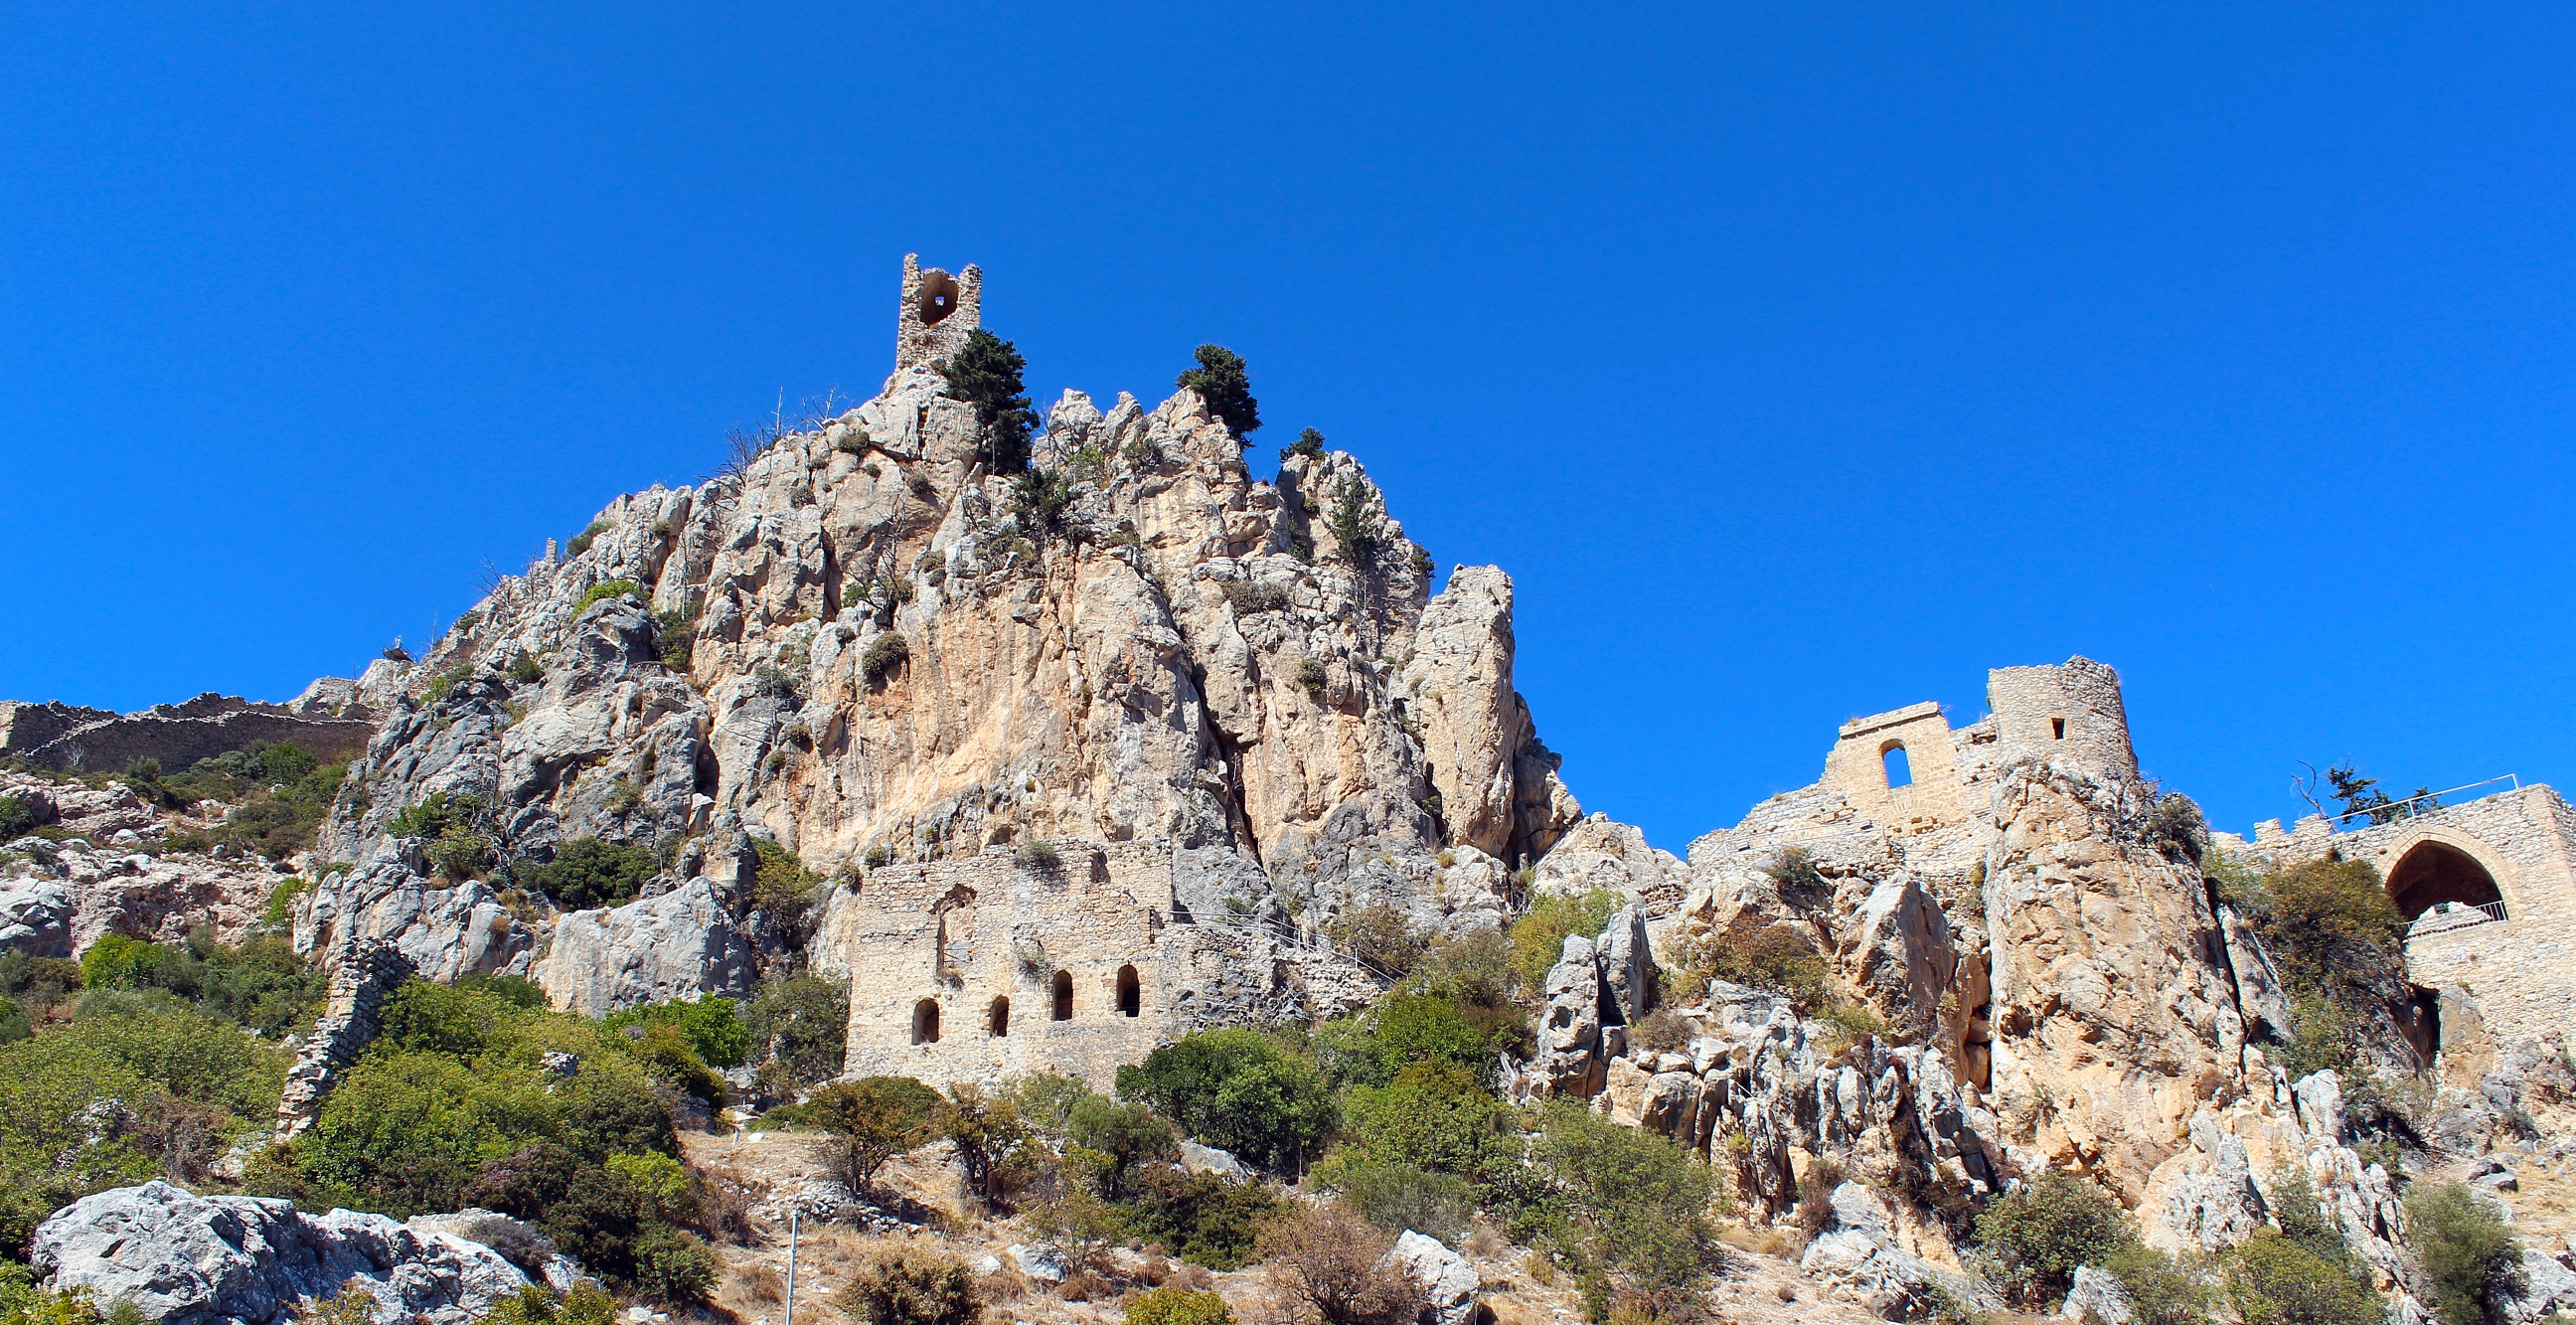 The Castle of St. Hilarion